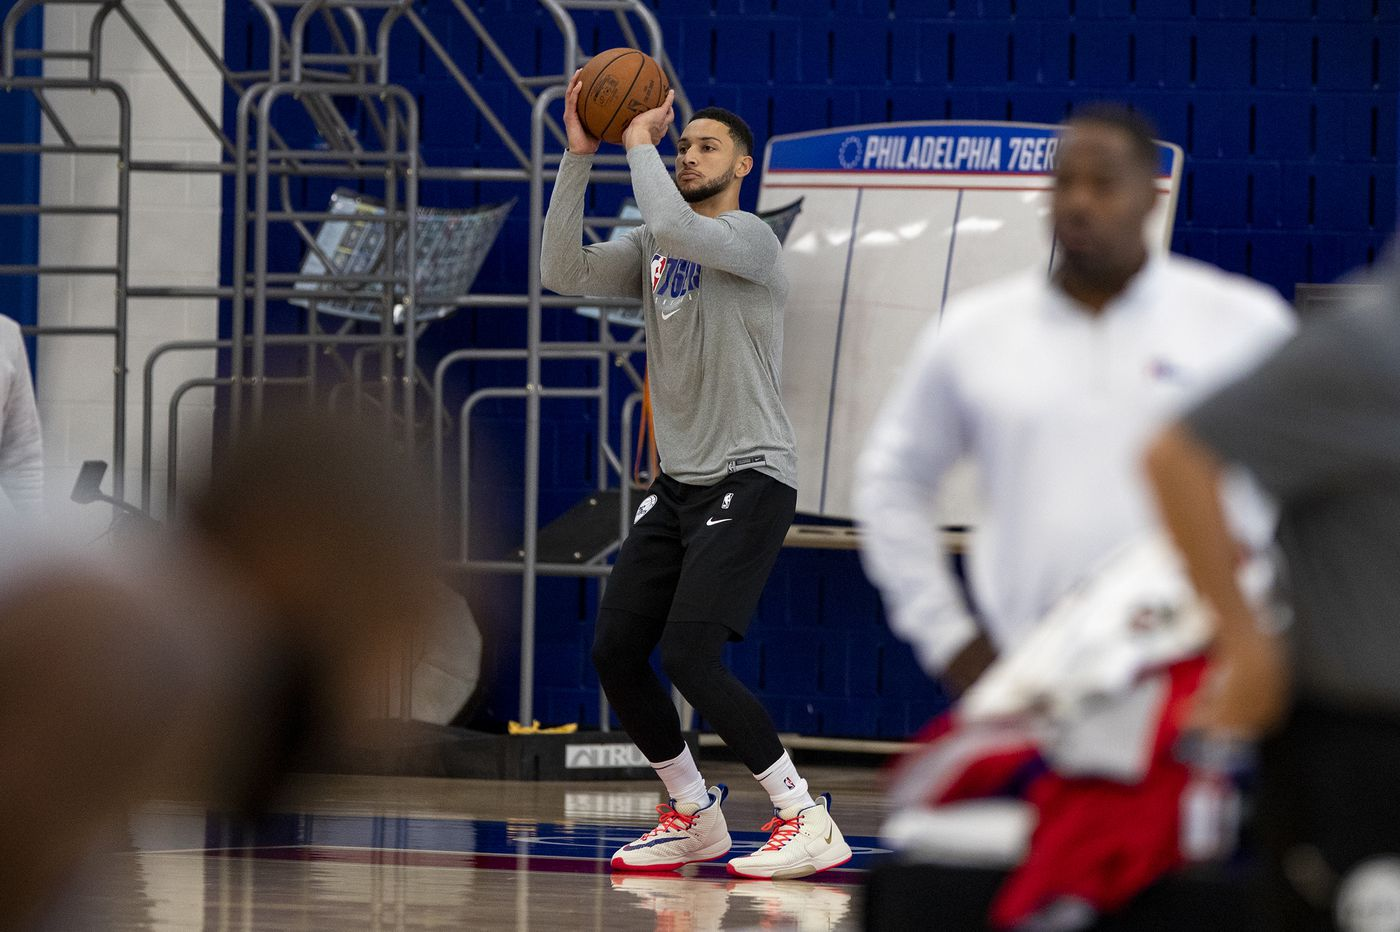 Sixers' Ben Simmons has plenty of game without shooting 3-pointers